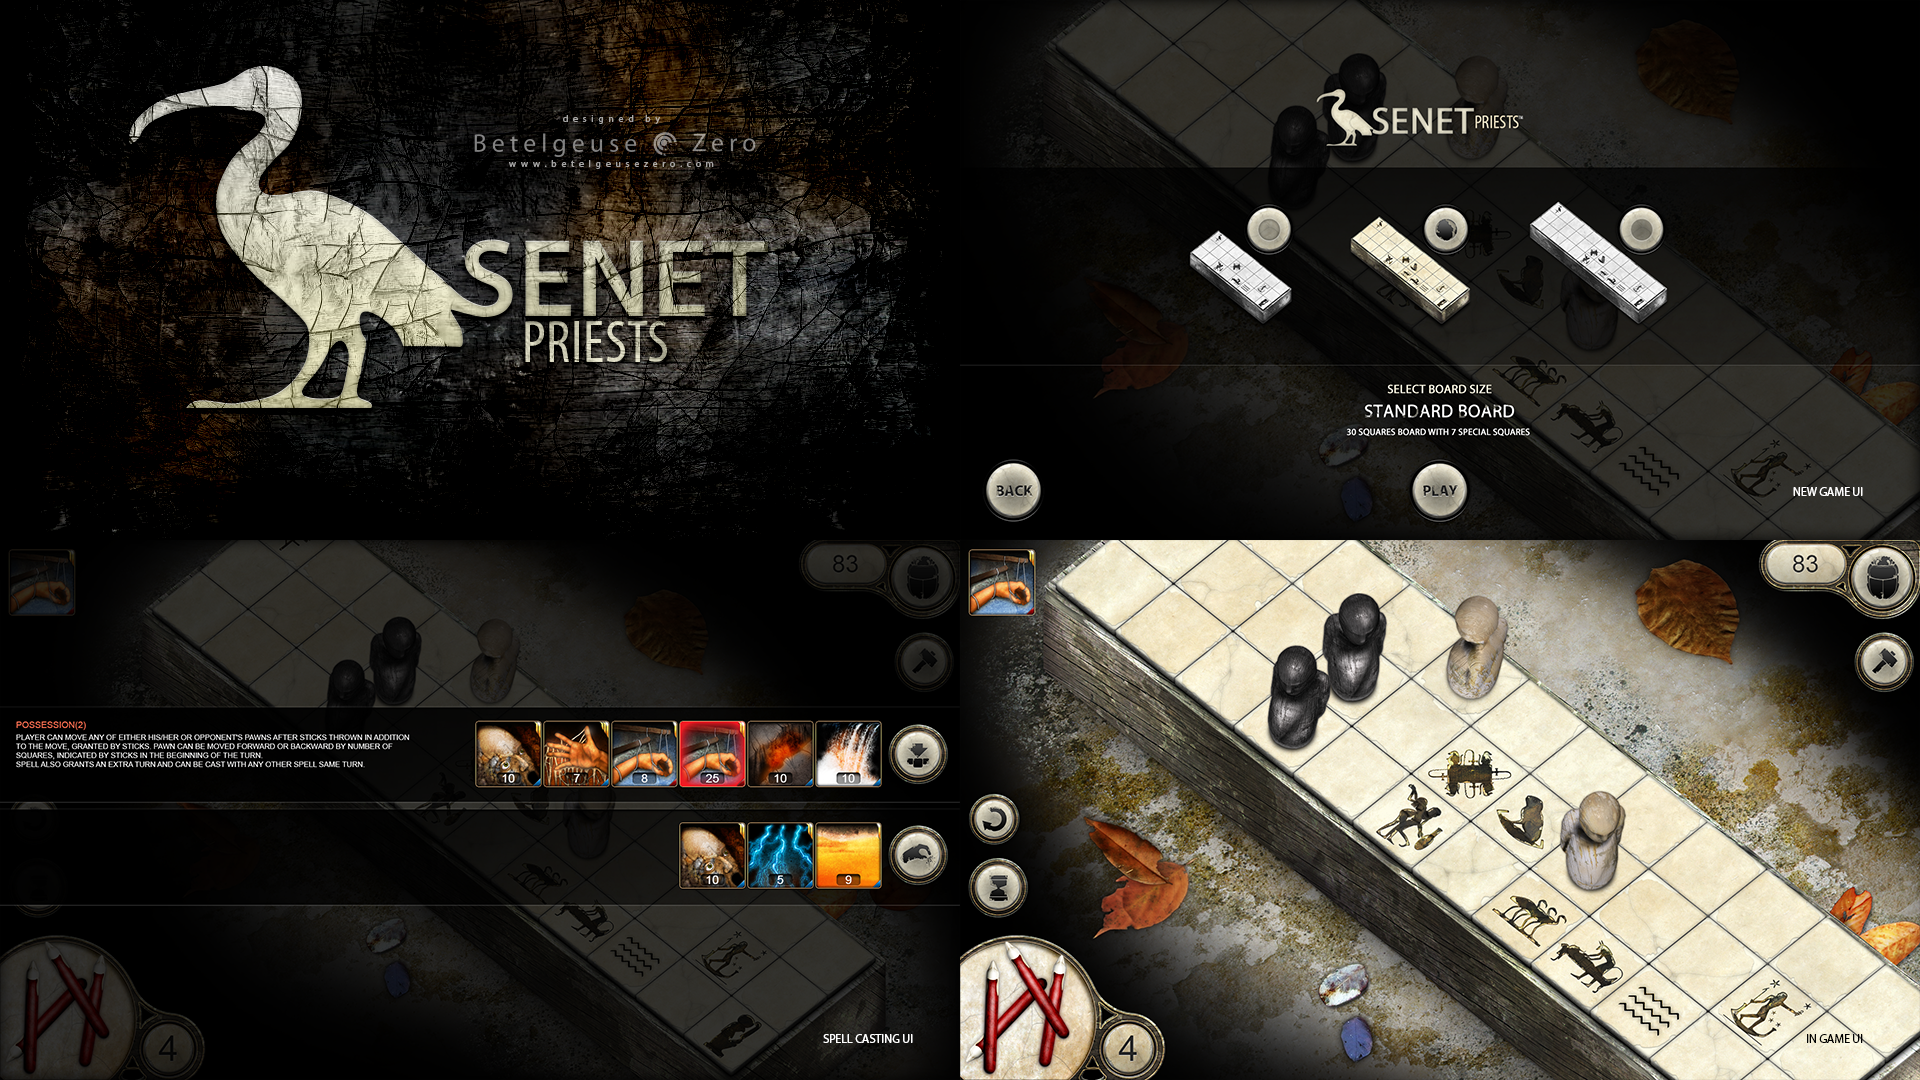 Senet Priests board game